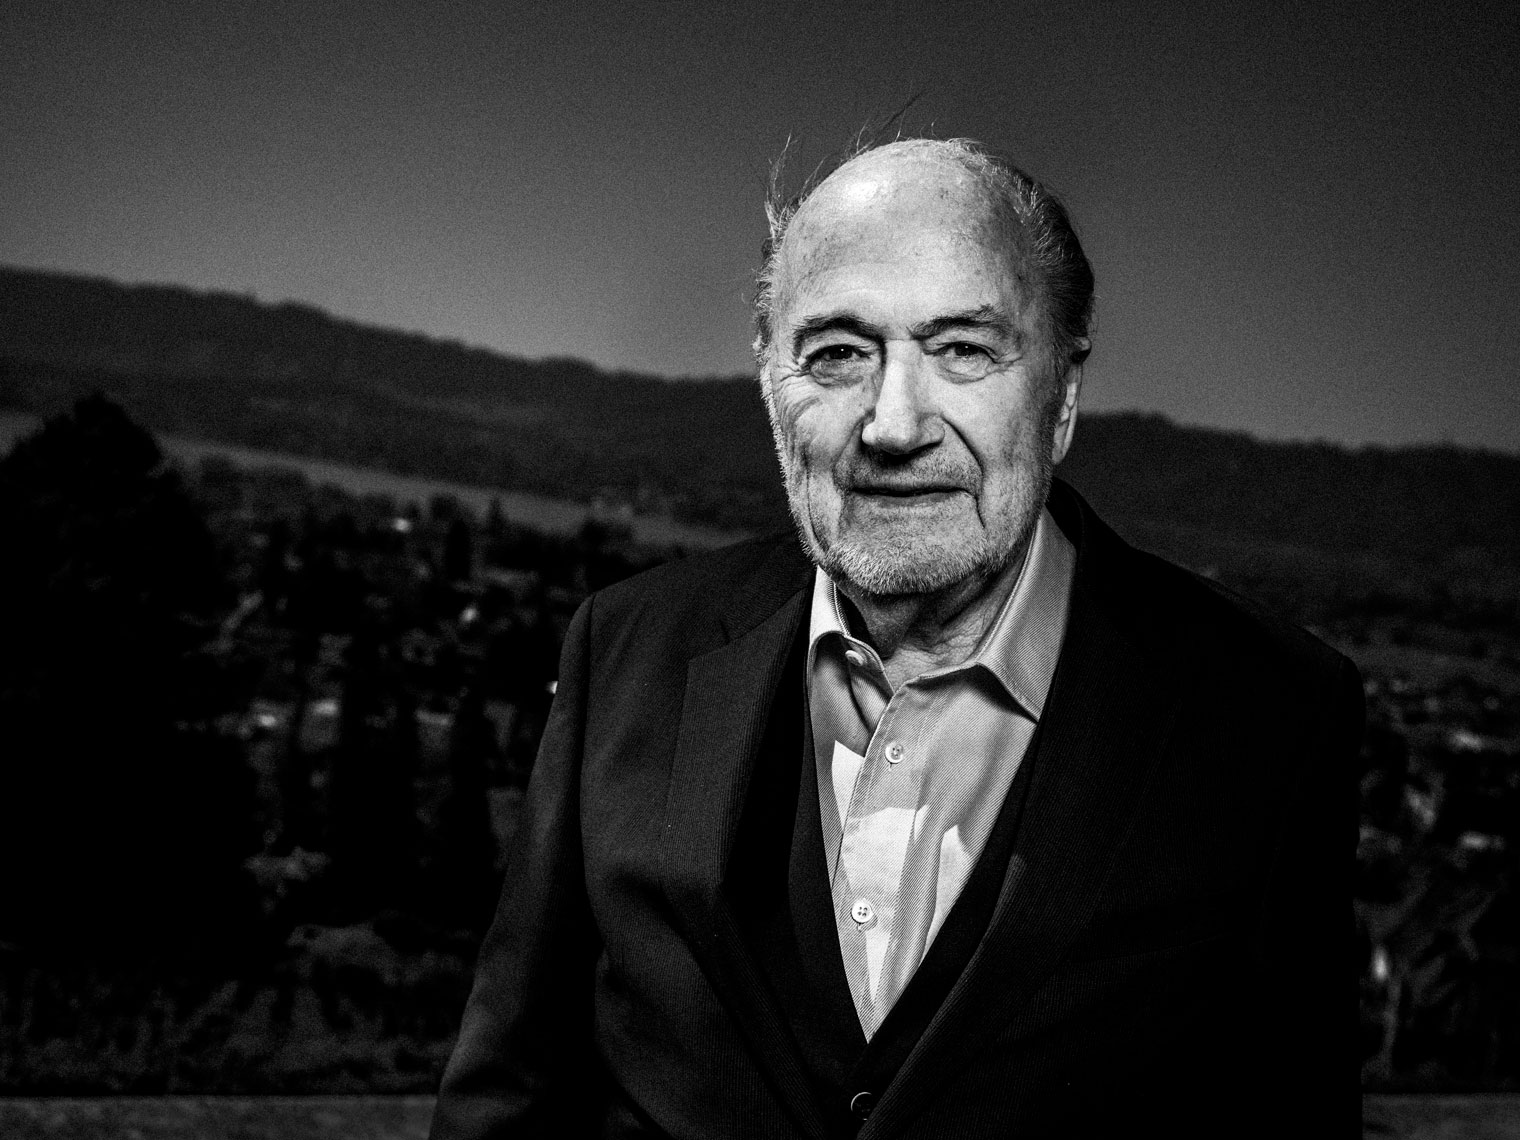 Sepp Blatter former FIFA President after his resignation, for Agence France-Presse